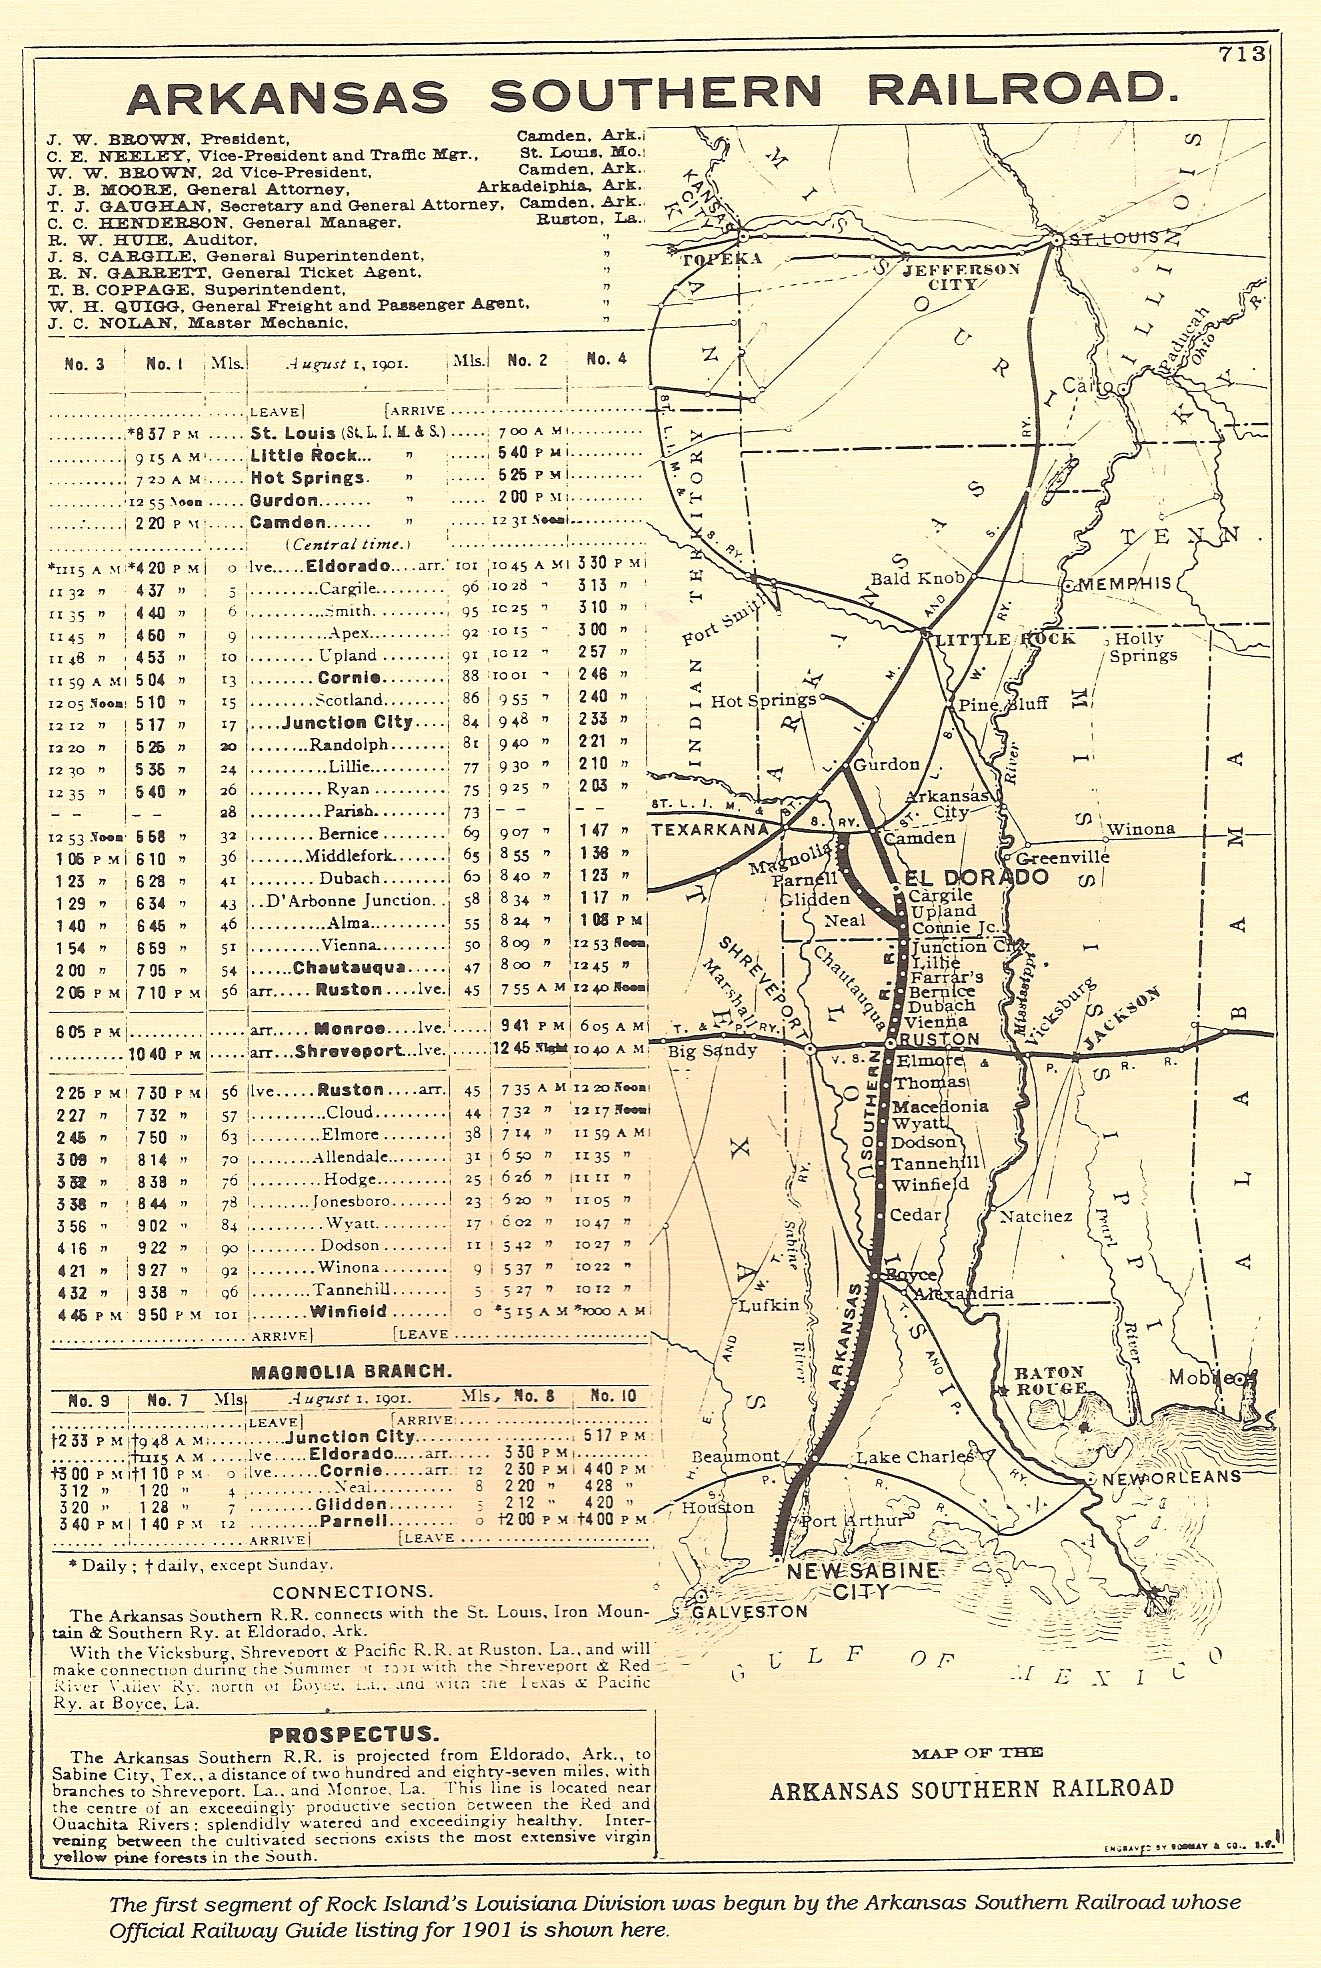 1901 Map of the Arkansas Southern Railroad through Union Parish